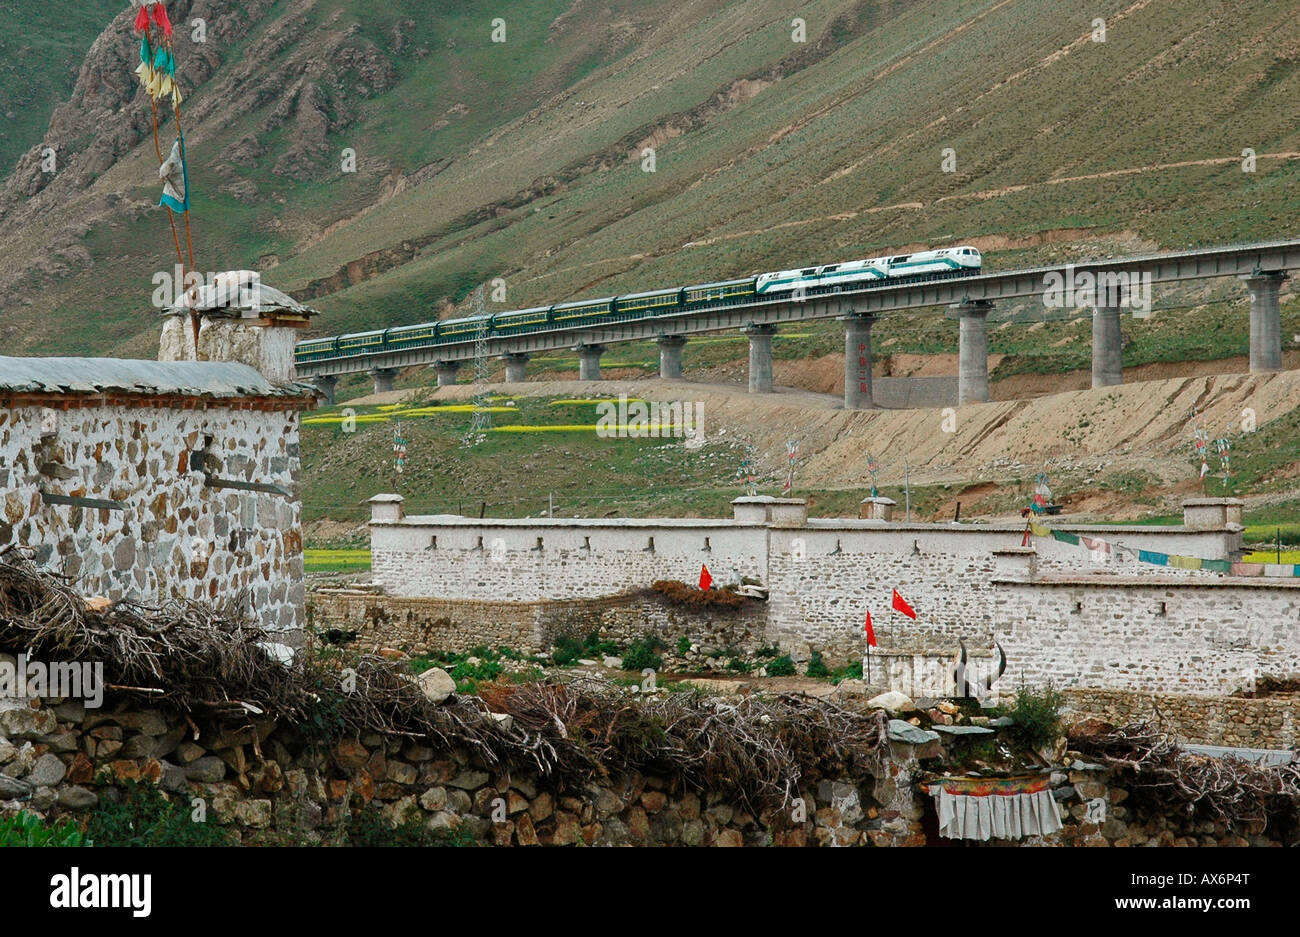 A train passes over a bridge next to a Tibetan village on the Tibet railway, which opened in July 2006. Tibet train - Stock Image